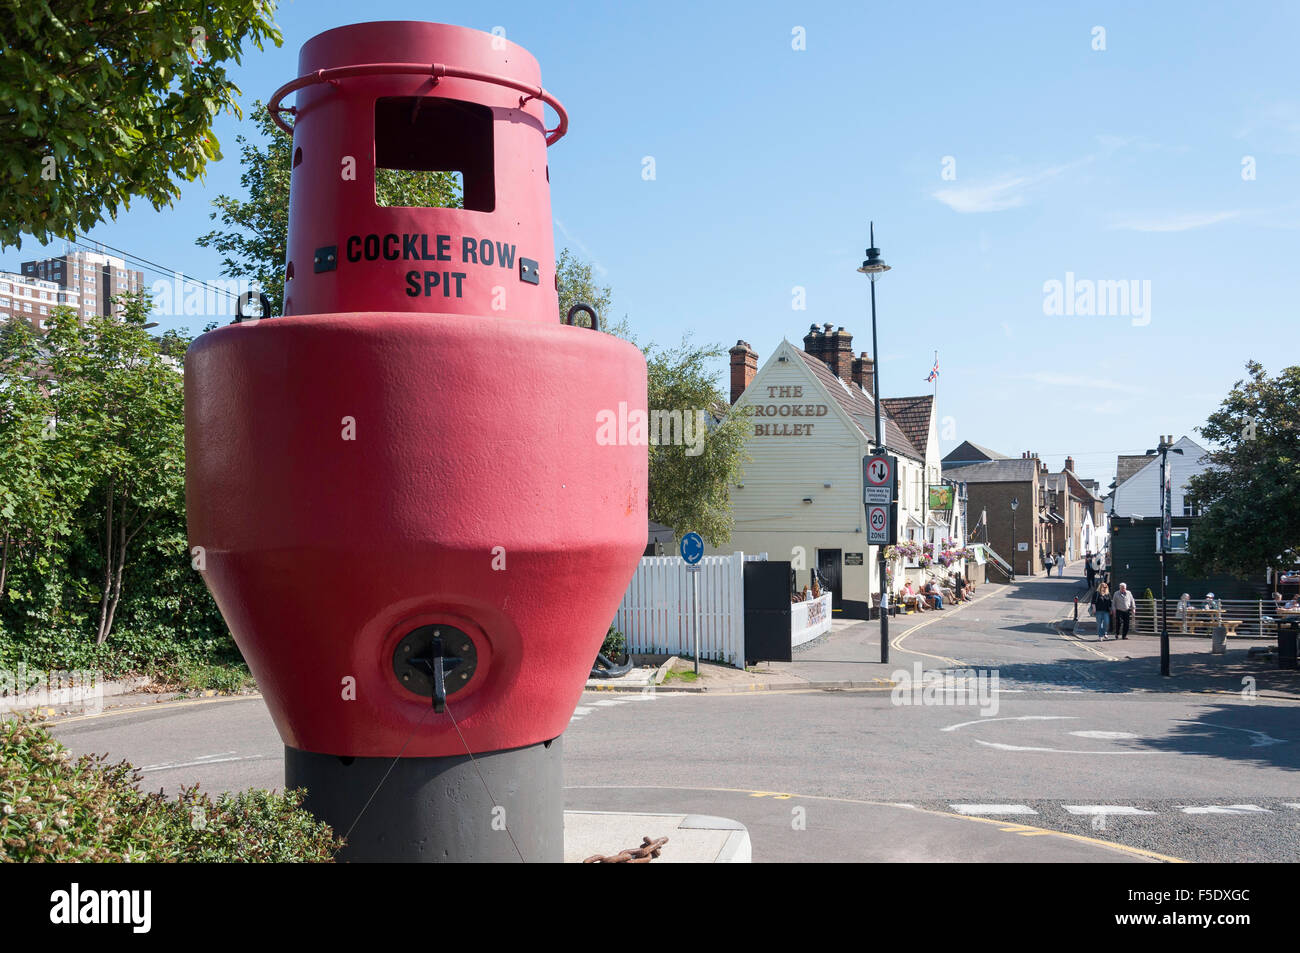 Cockle Row Spit buoy, High Street, Old Leigh, Leigh-on-Sea, Essex, England, United Kingdom - Stock Image